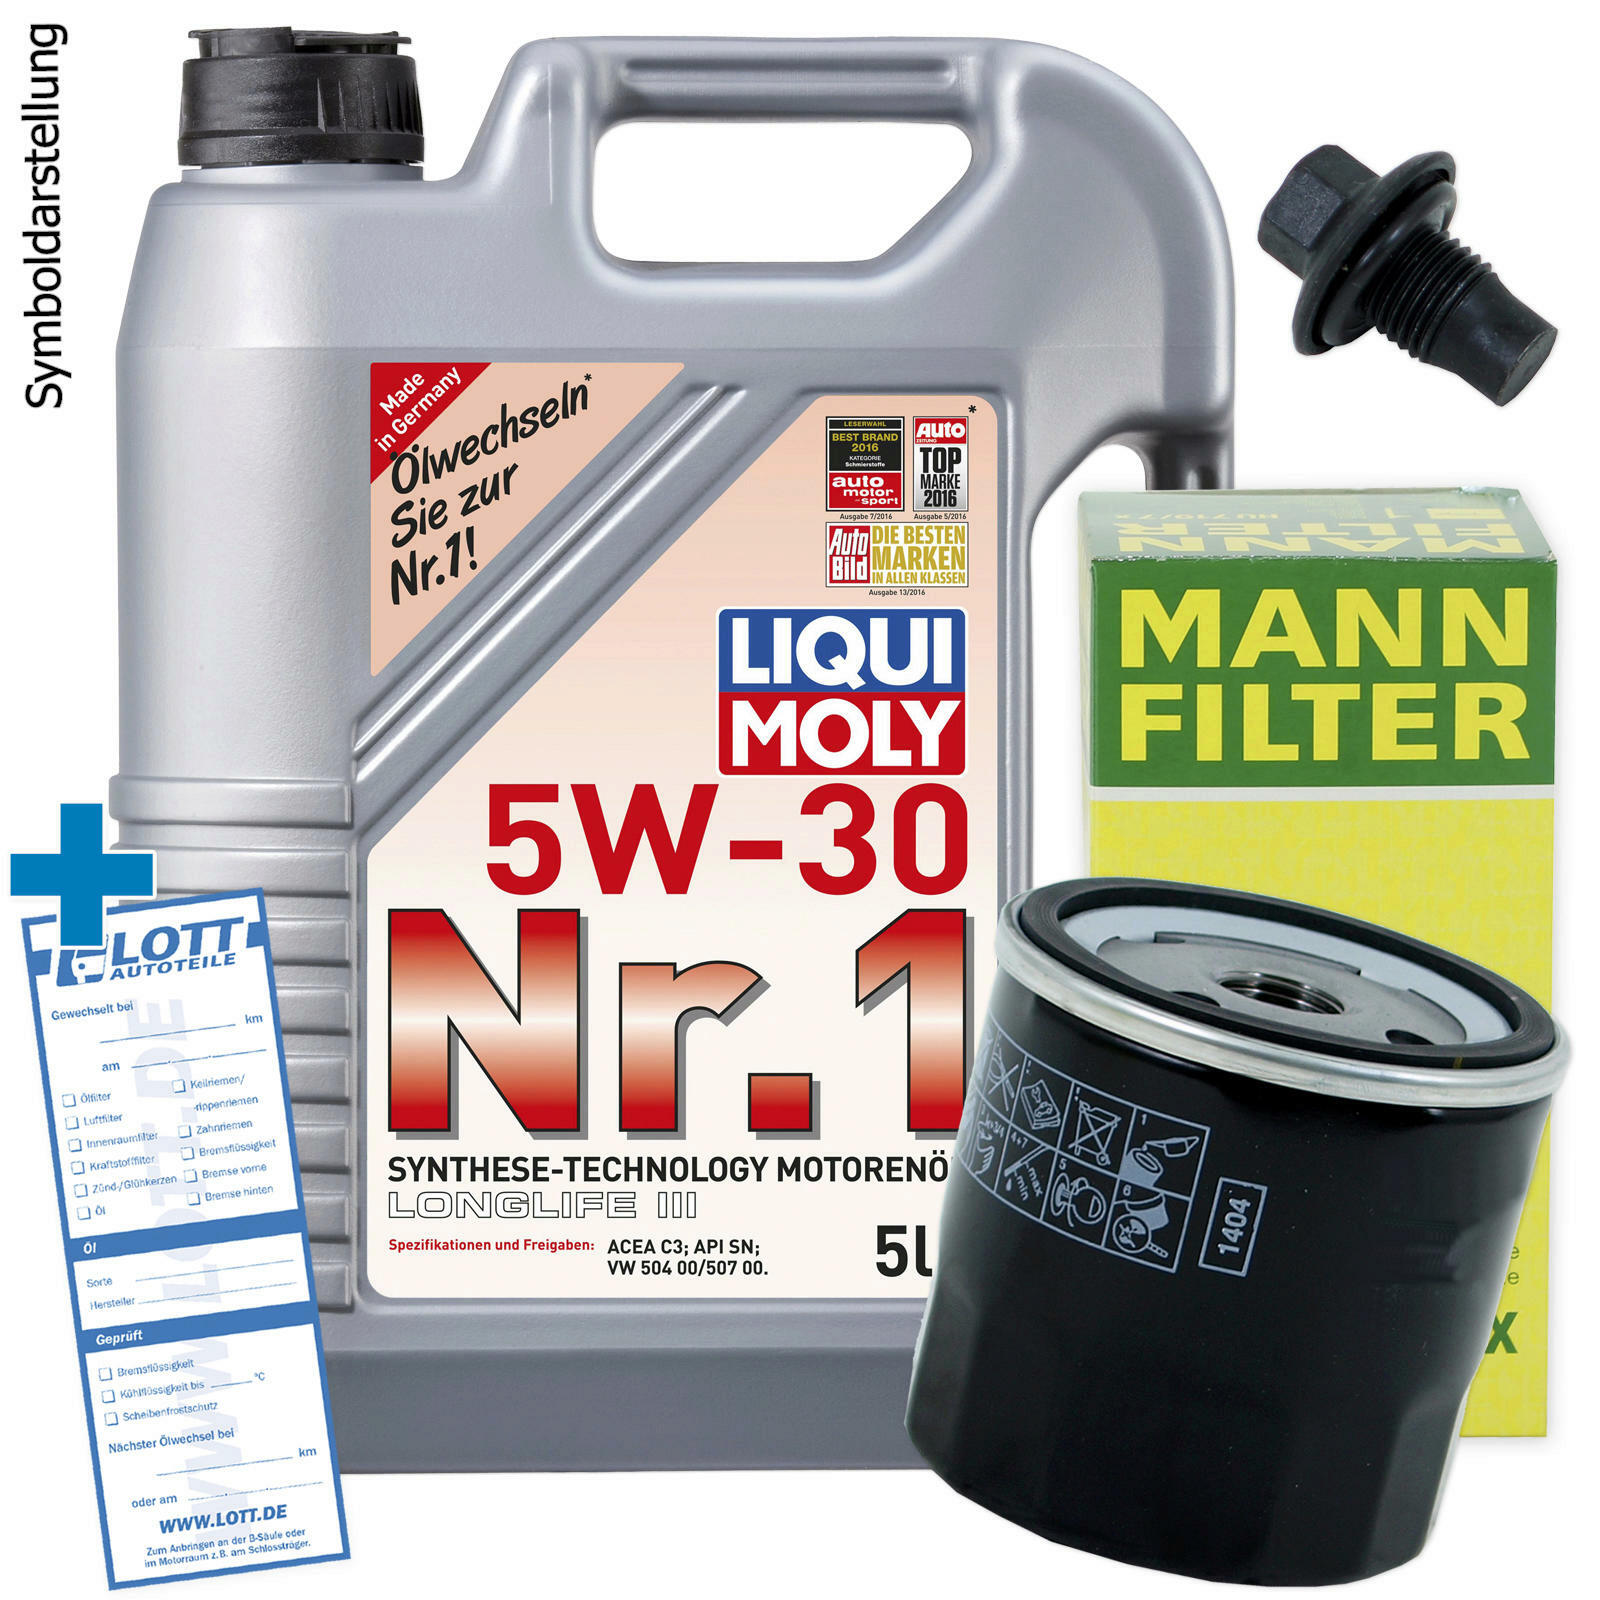 lwechsel set 5l 5w30 l motor l liqui moly mann. Black Bedroom Furniture Sets. Home Design Ideas